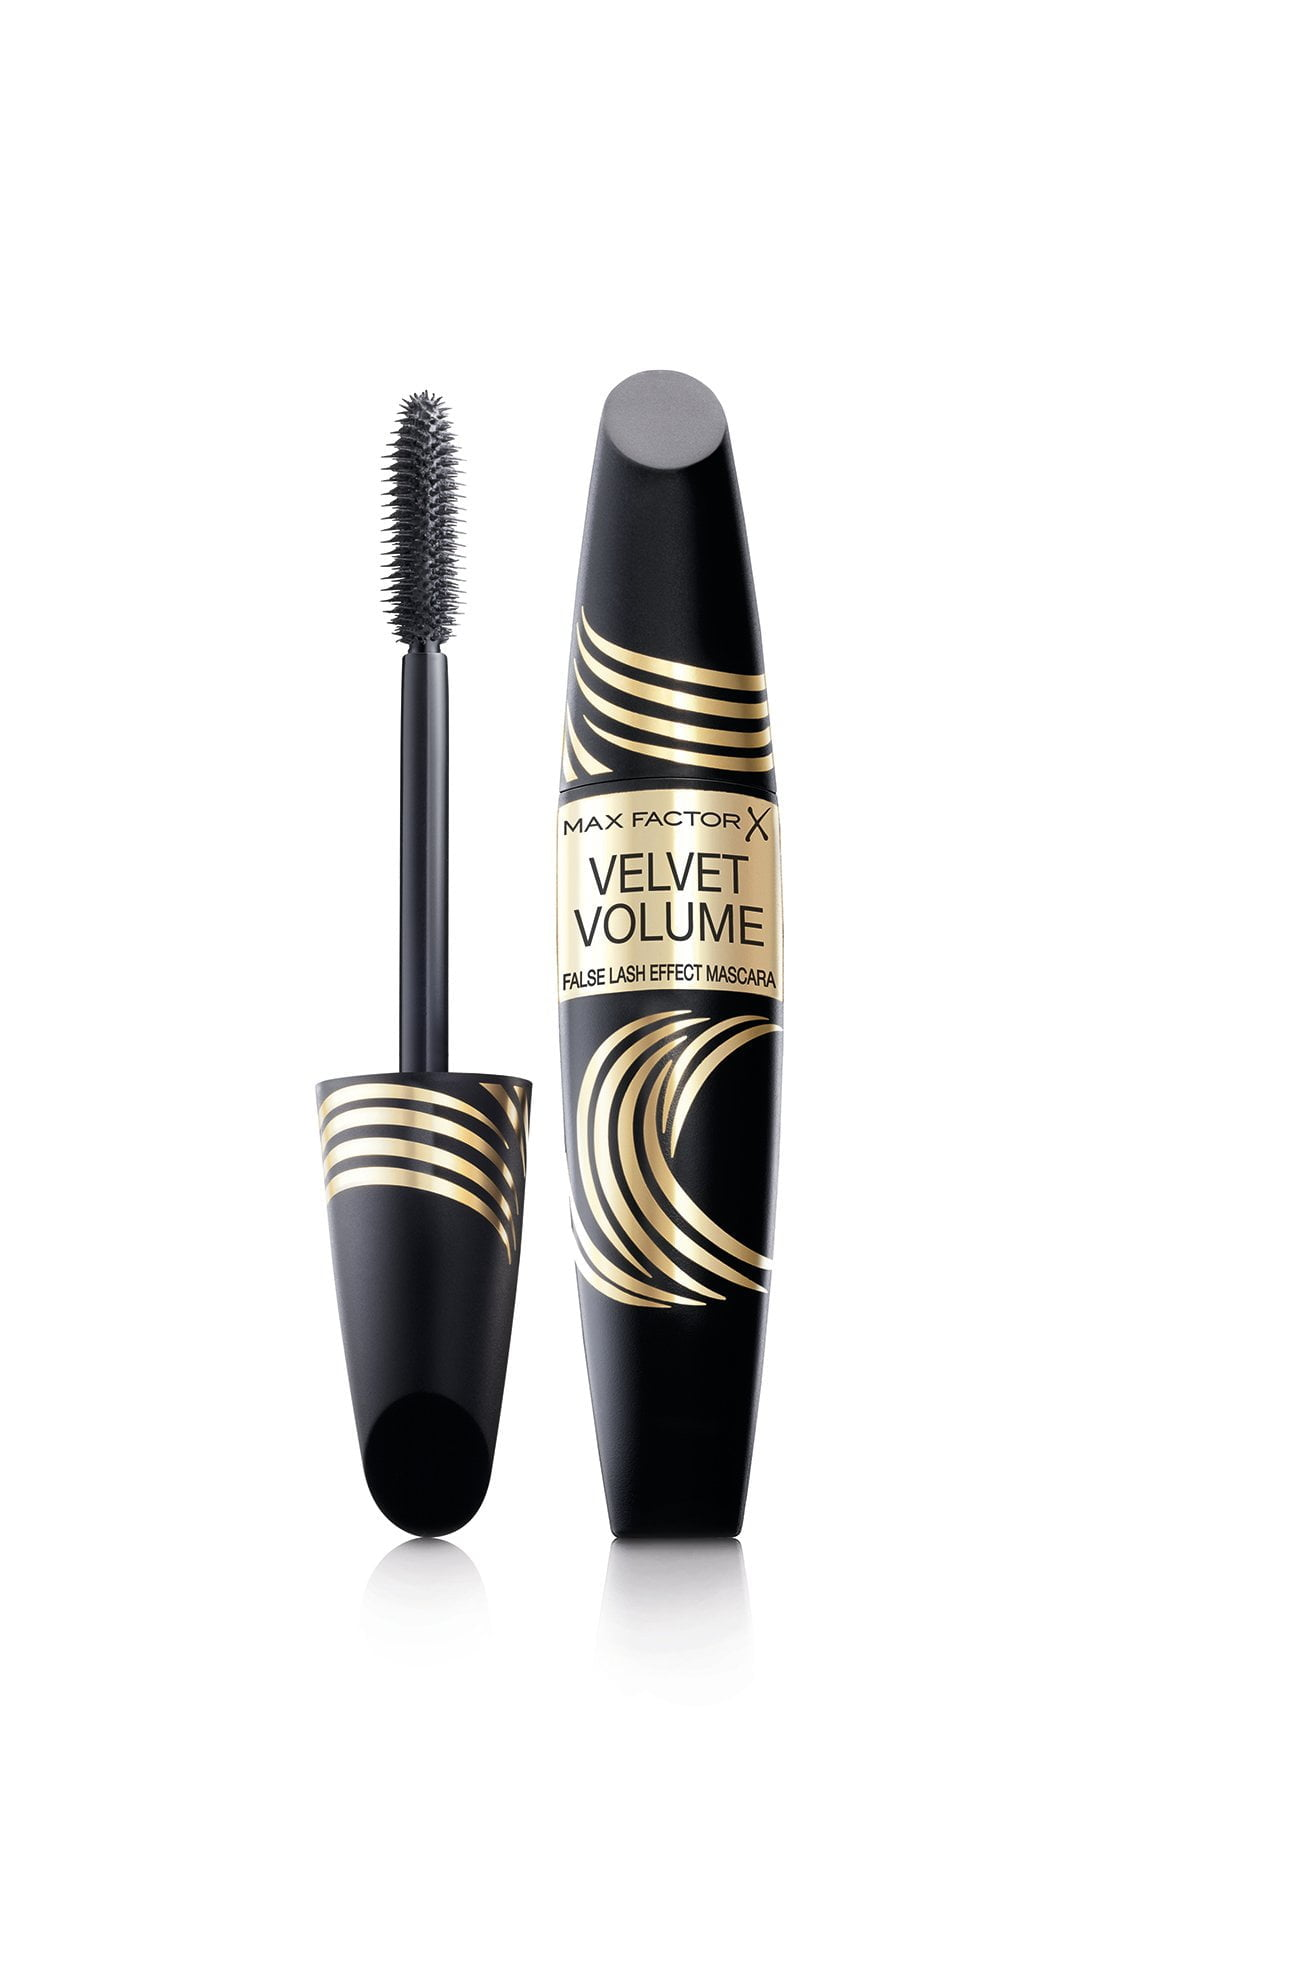 Max Factor Velvet Volume False Lash Effect Mascara